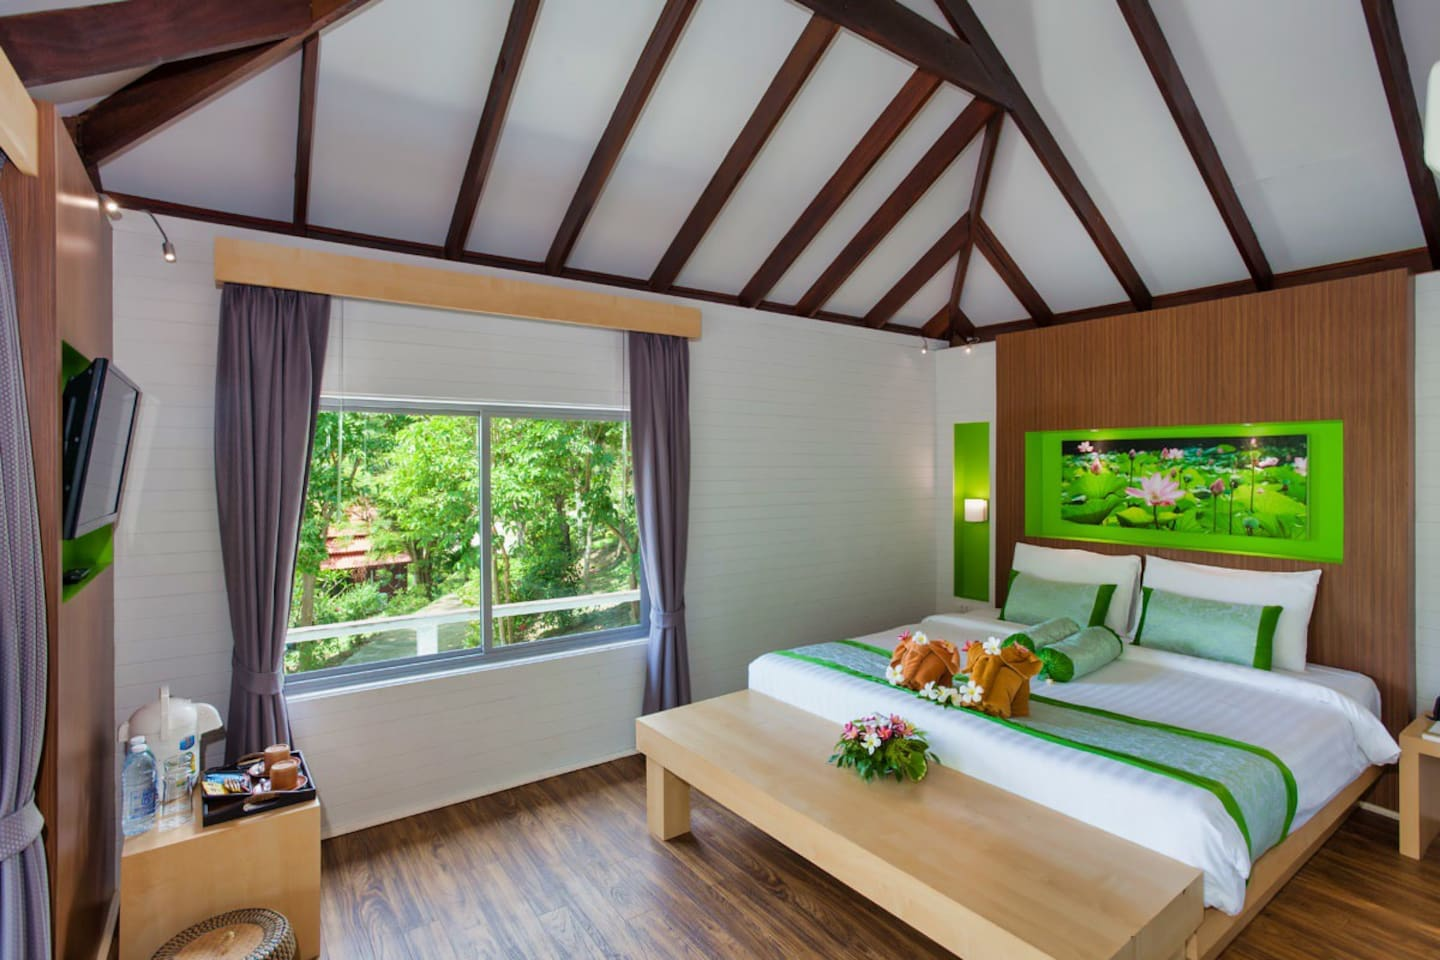 ideal retreats for couples offering privacy, peace and tranquillity